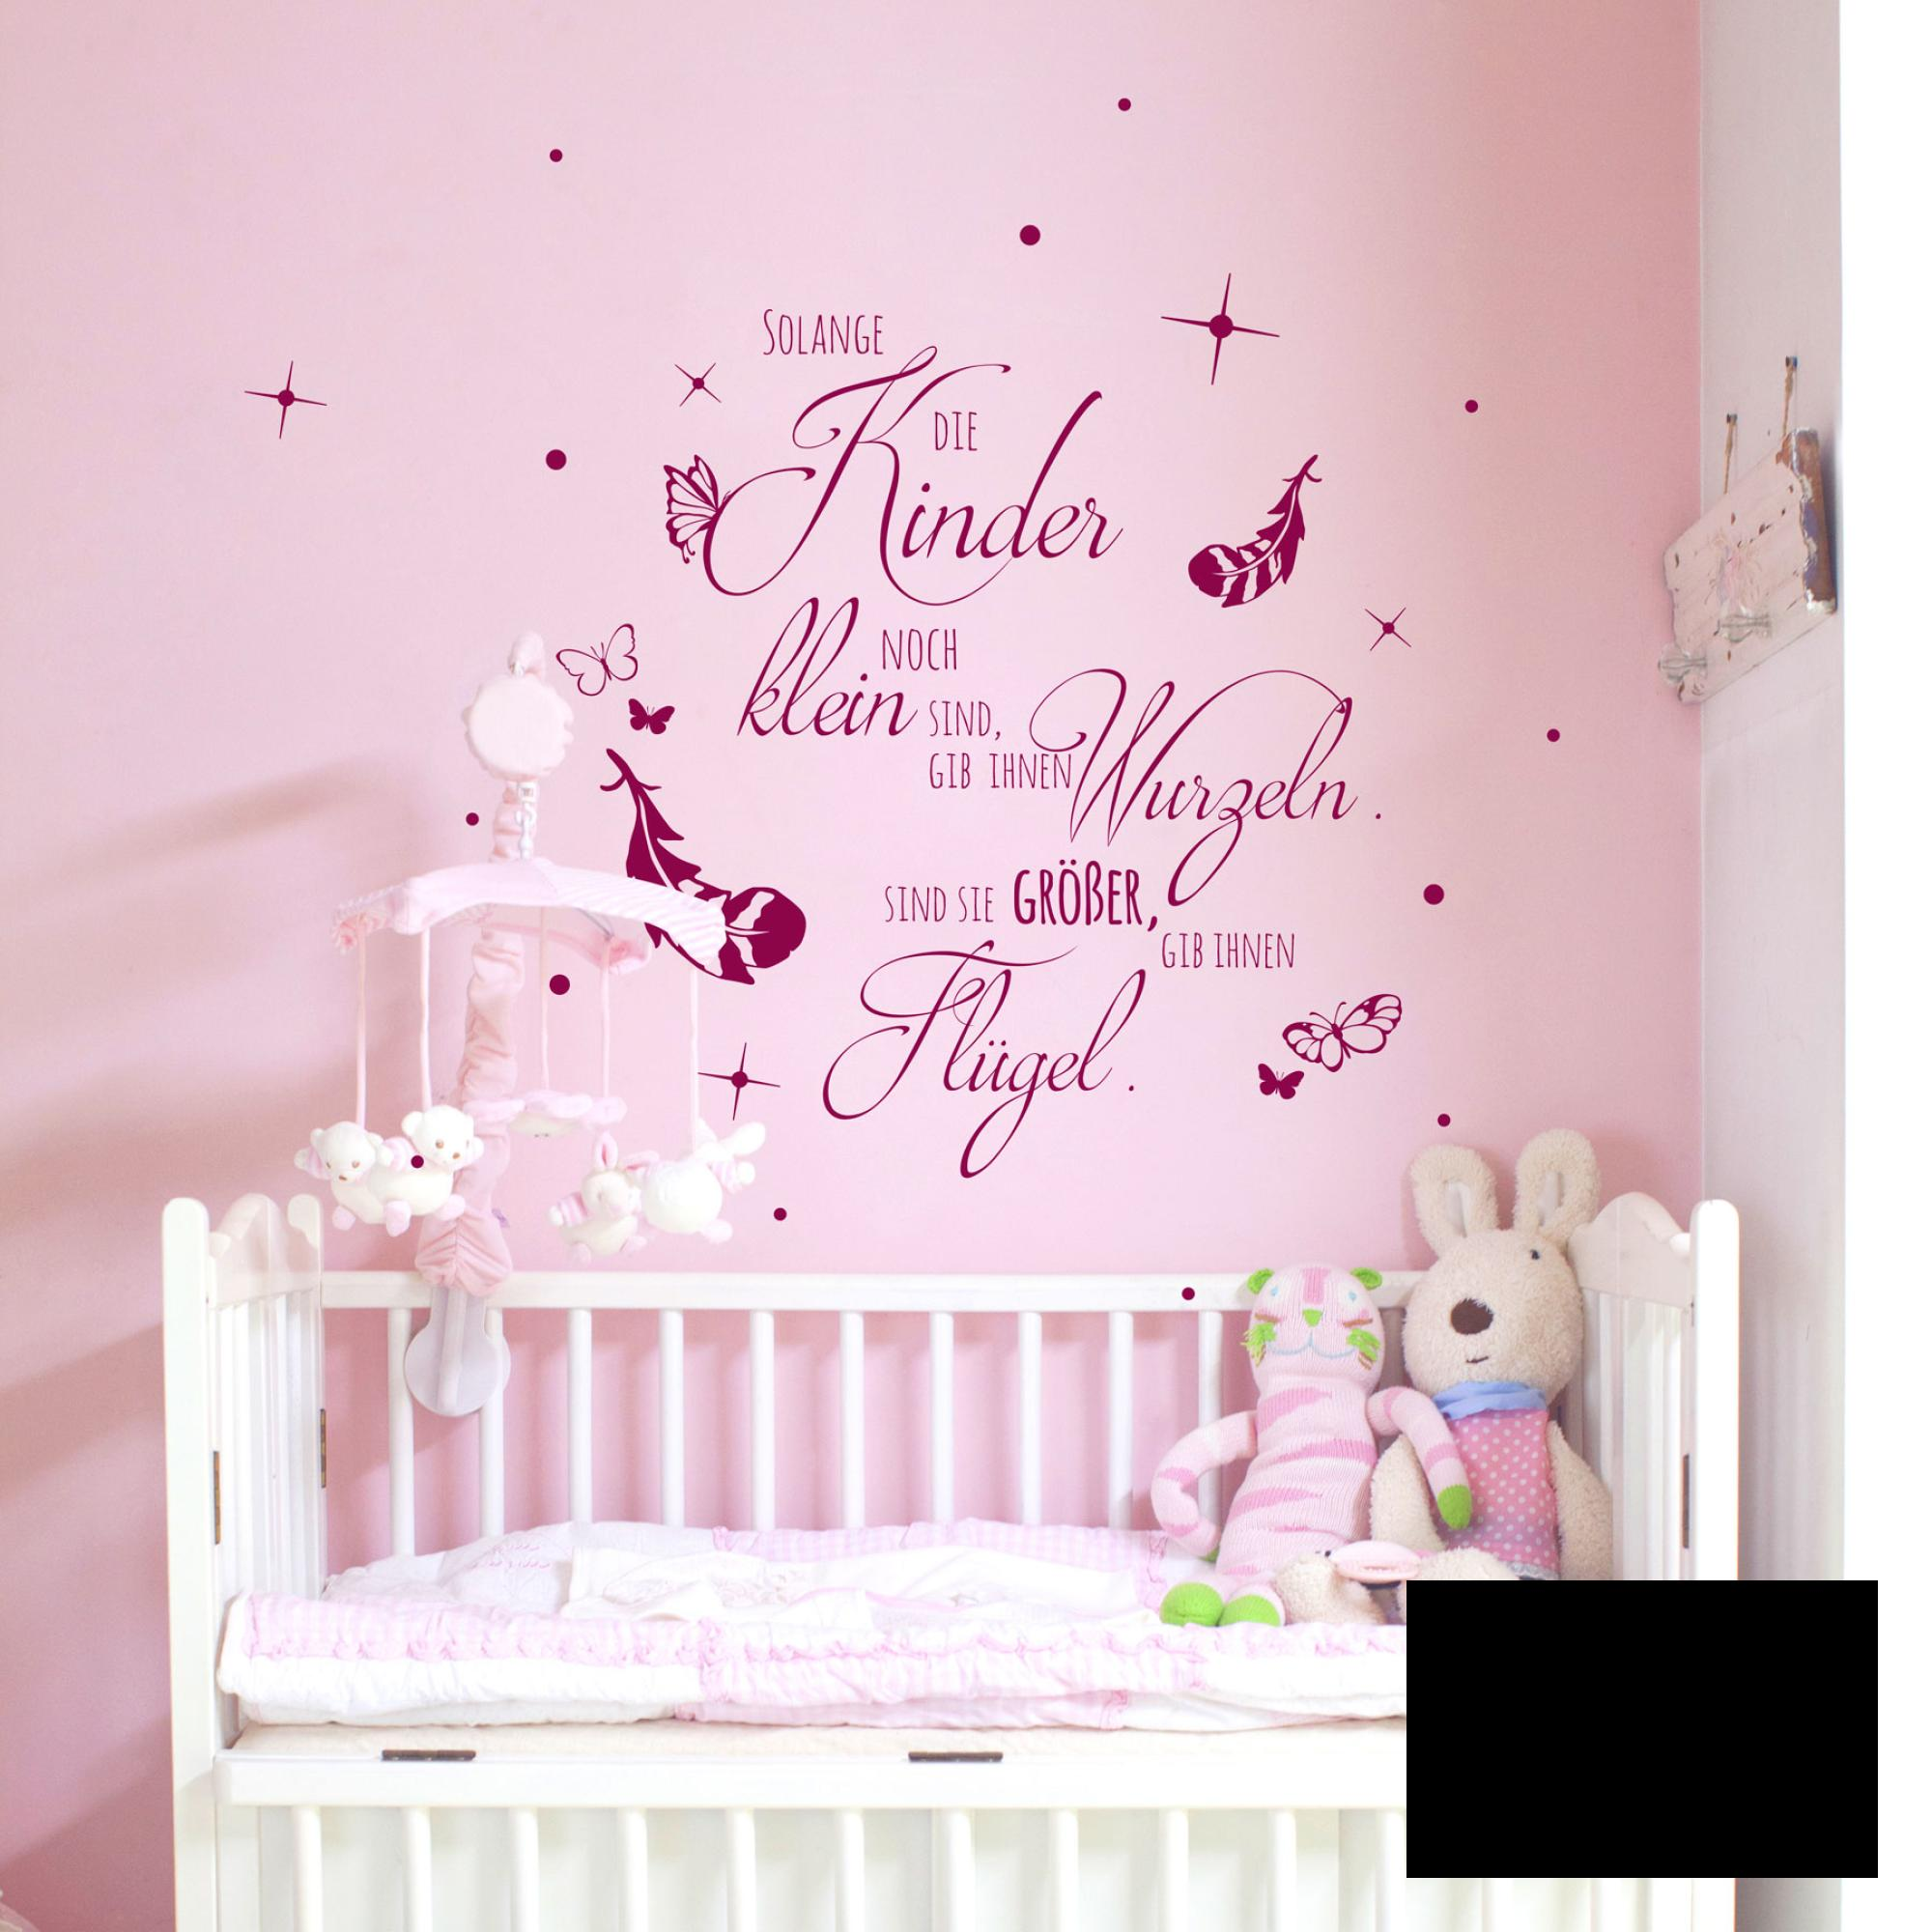 wandtattoo kinderzimmer wandsticker spruch solange kinder klein sind m2155 ebay. Black Bedroom Furniture Sets. Home Design Ideas